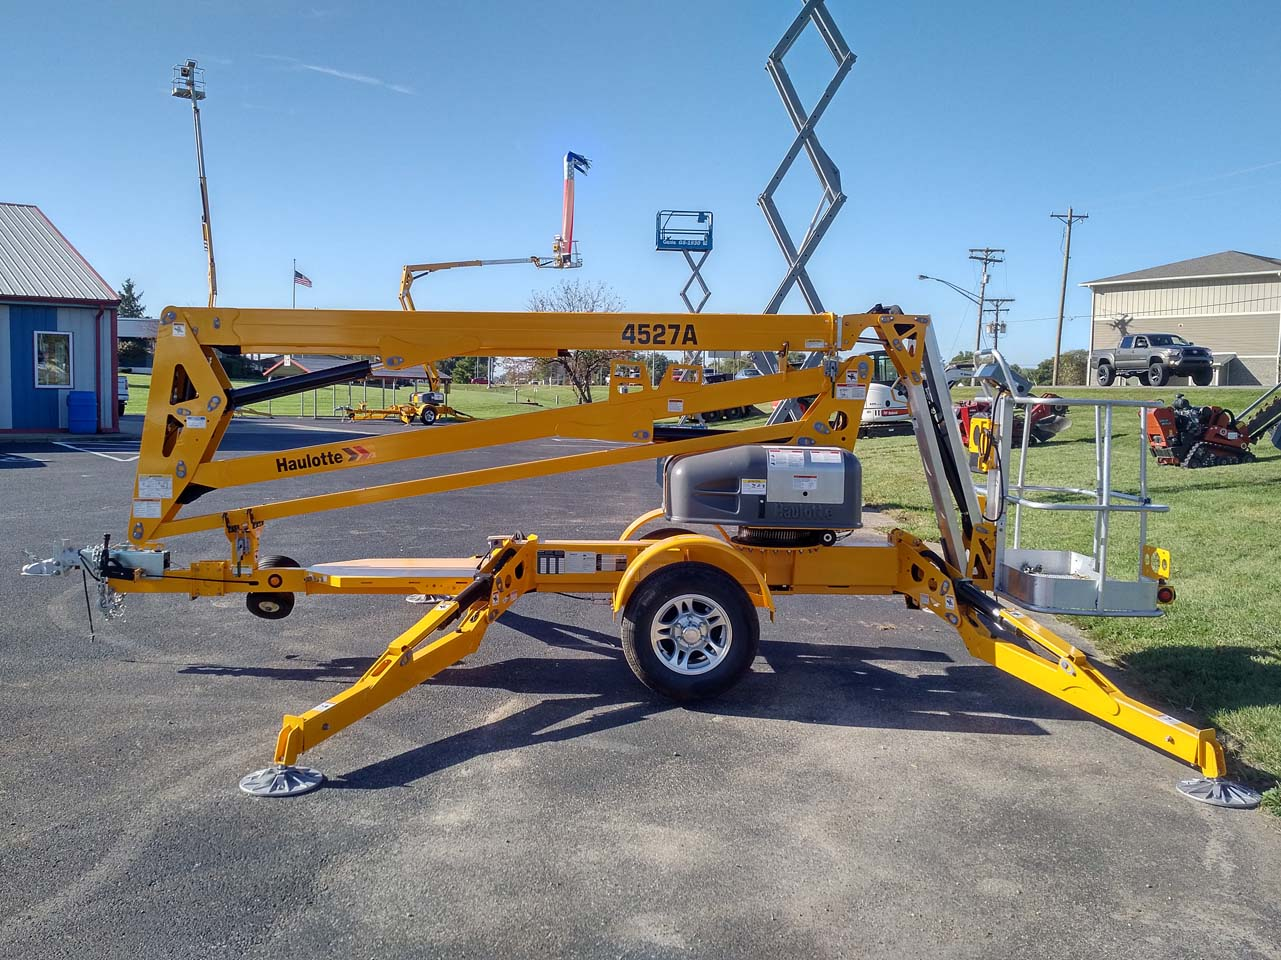 Haulotte Boom Lift Rental Columbus Indiana